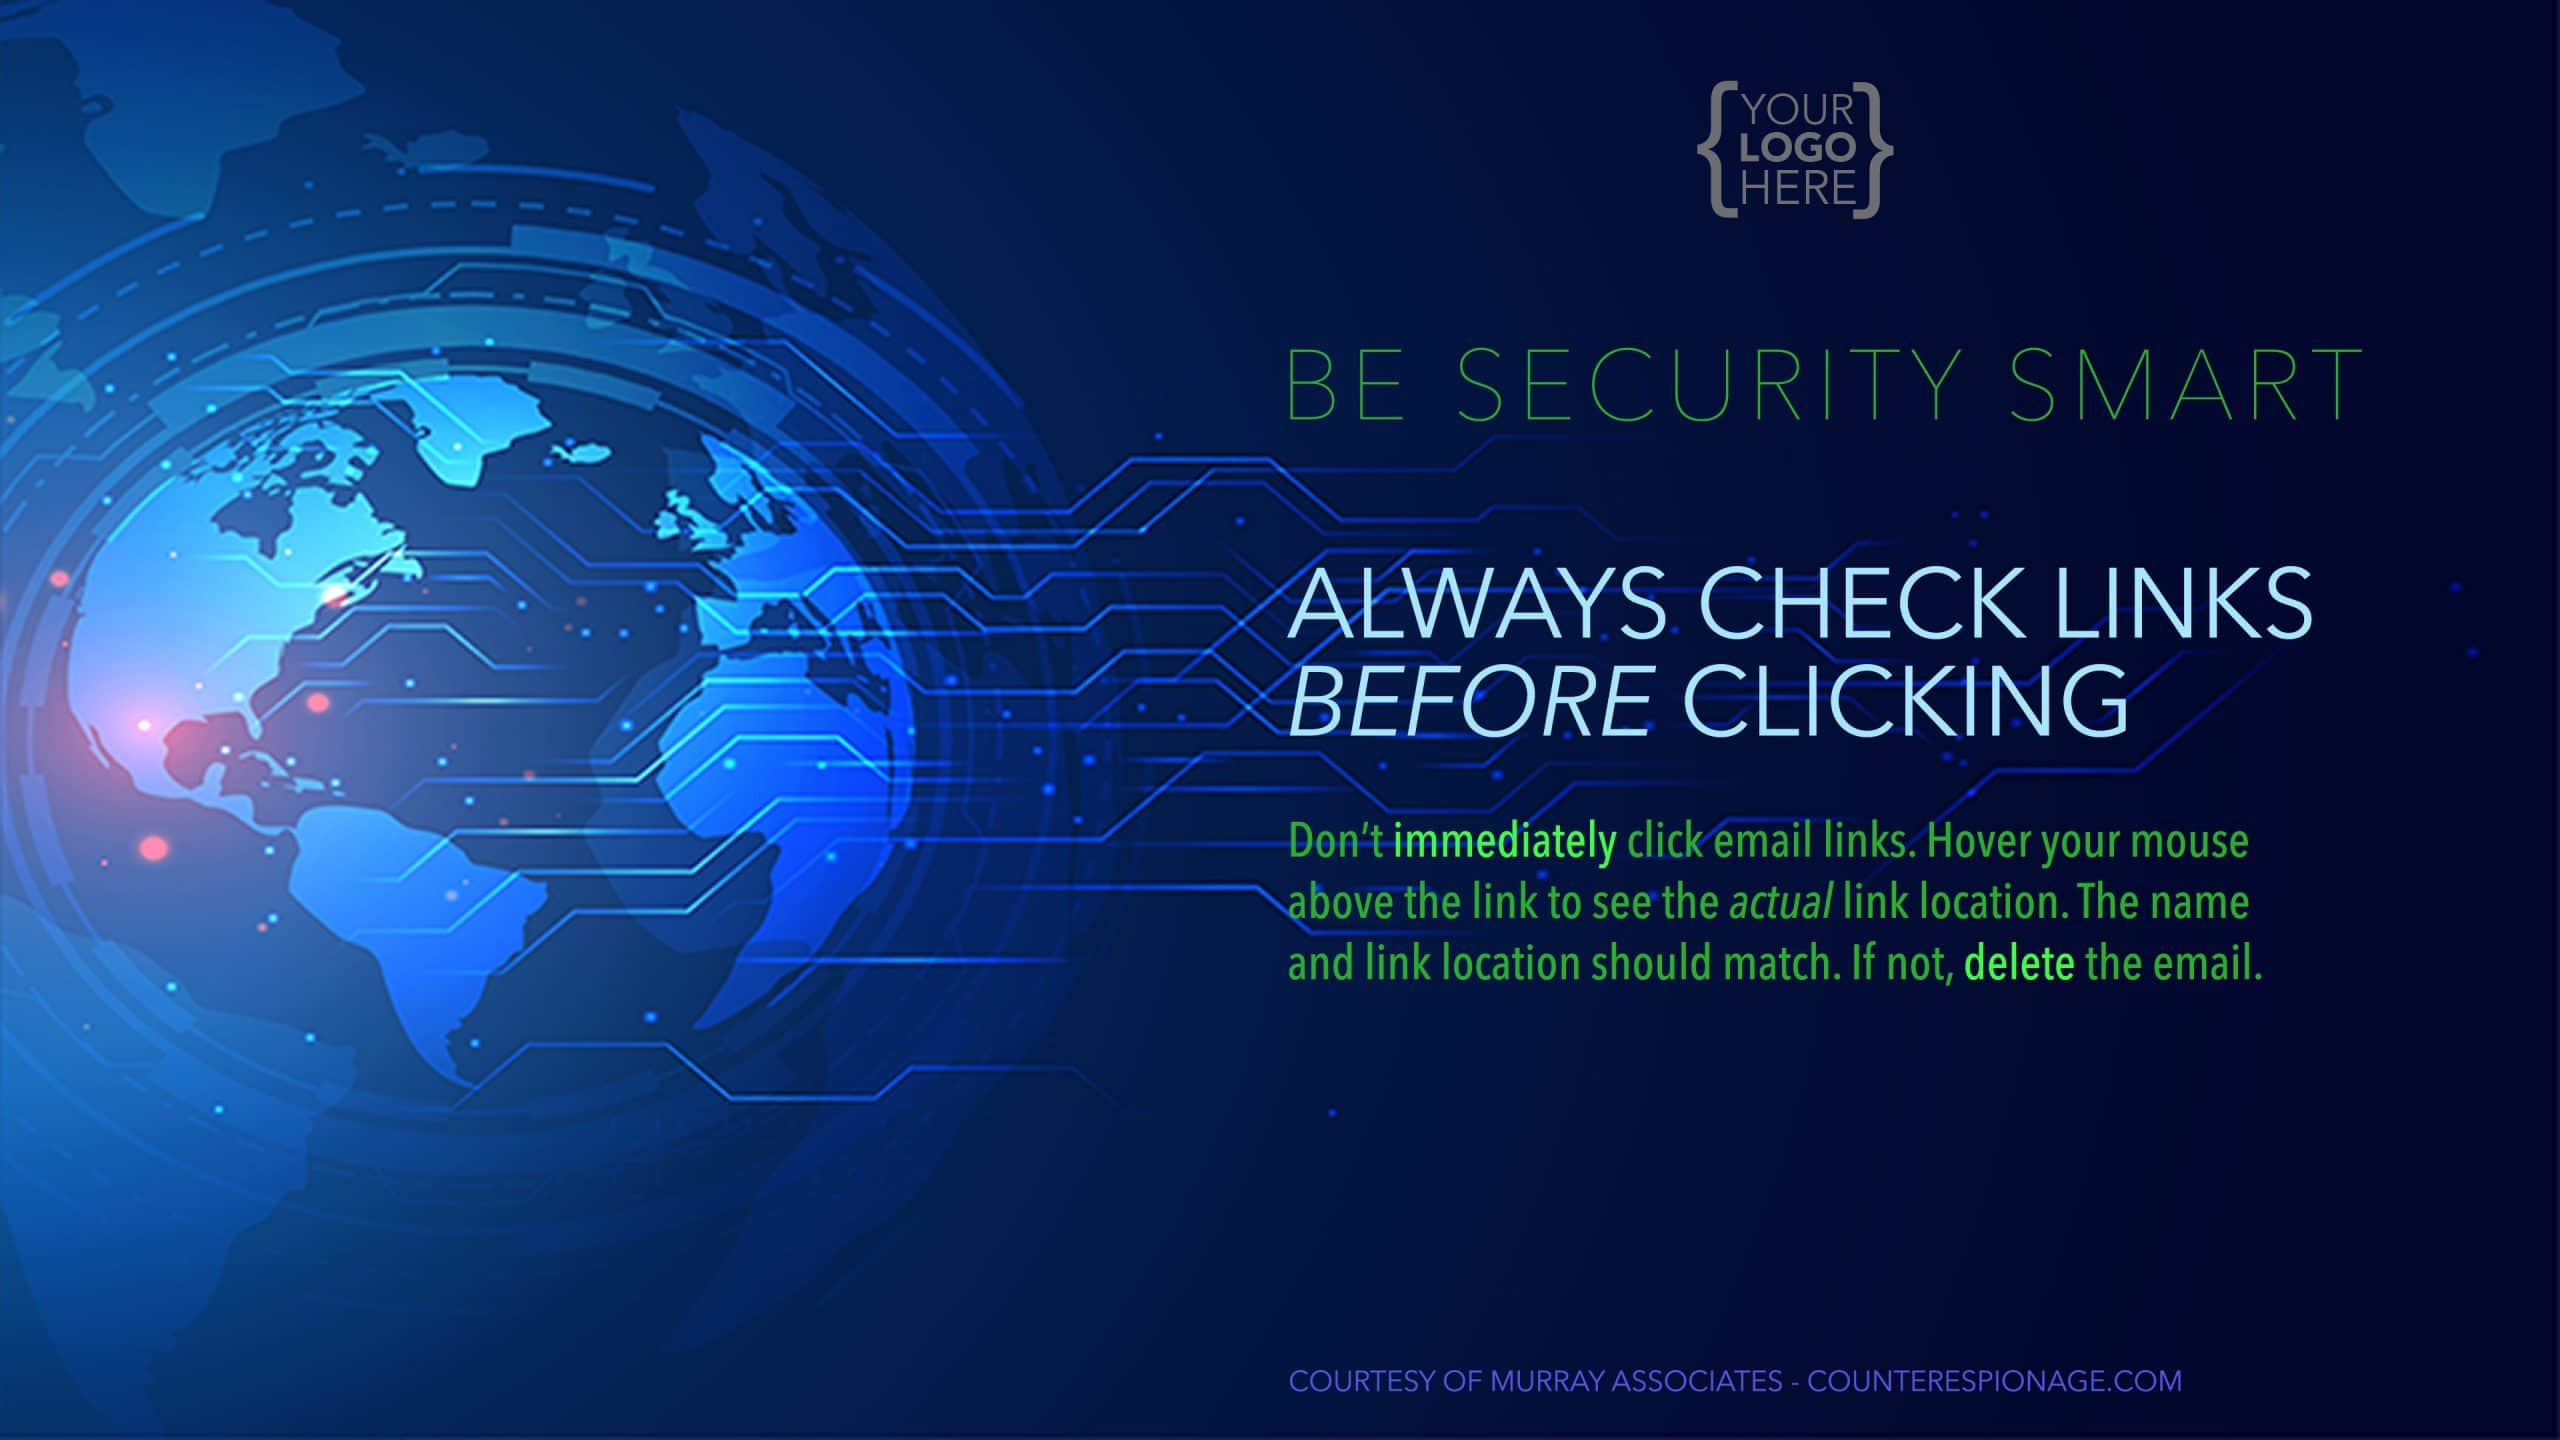 Security Reminder Screen Saver 3 - Always Check